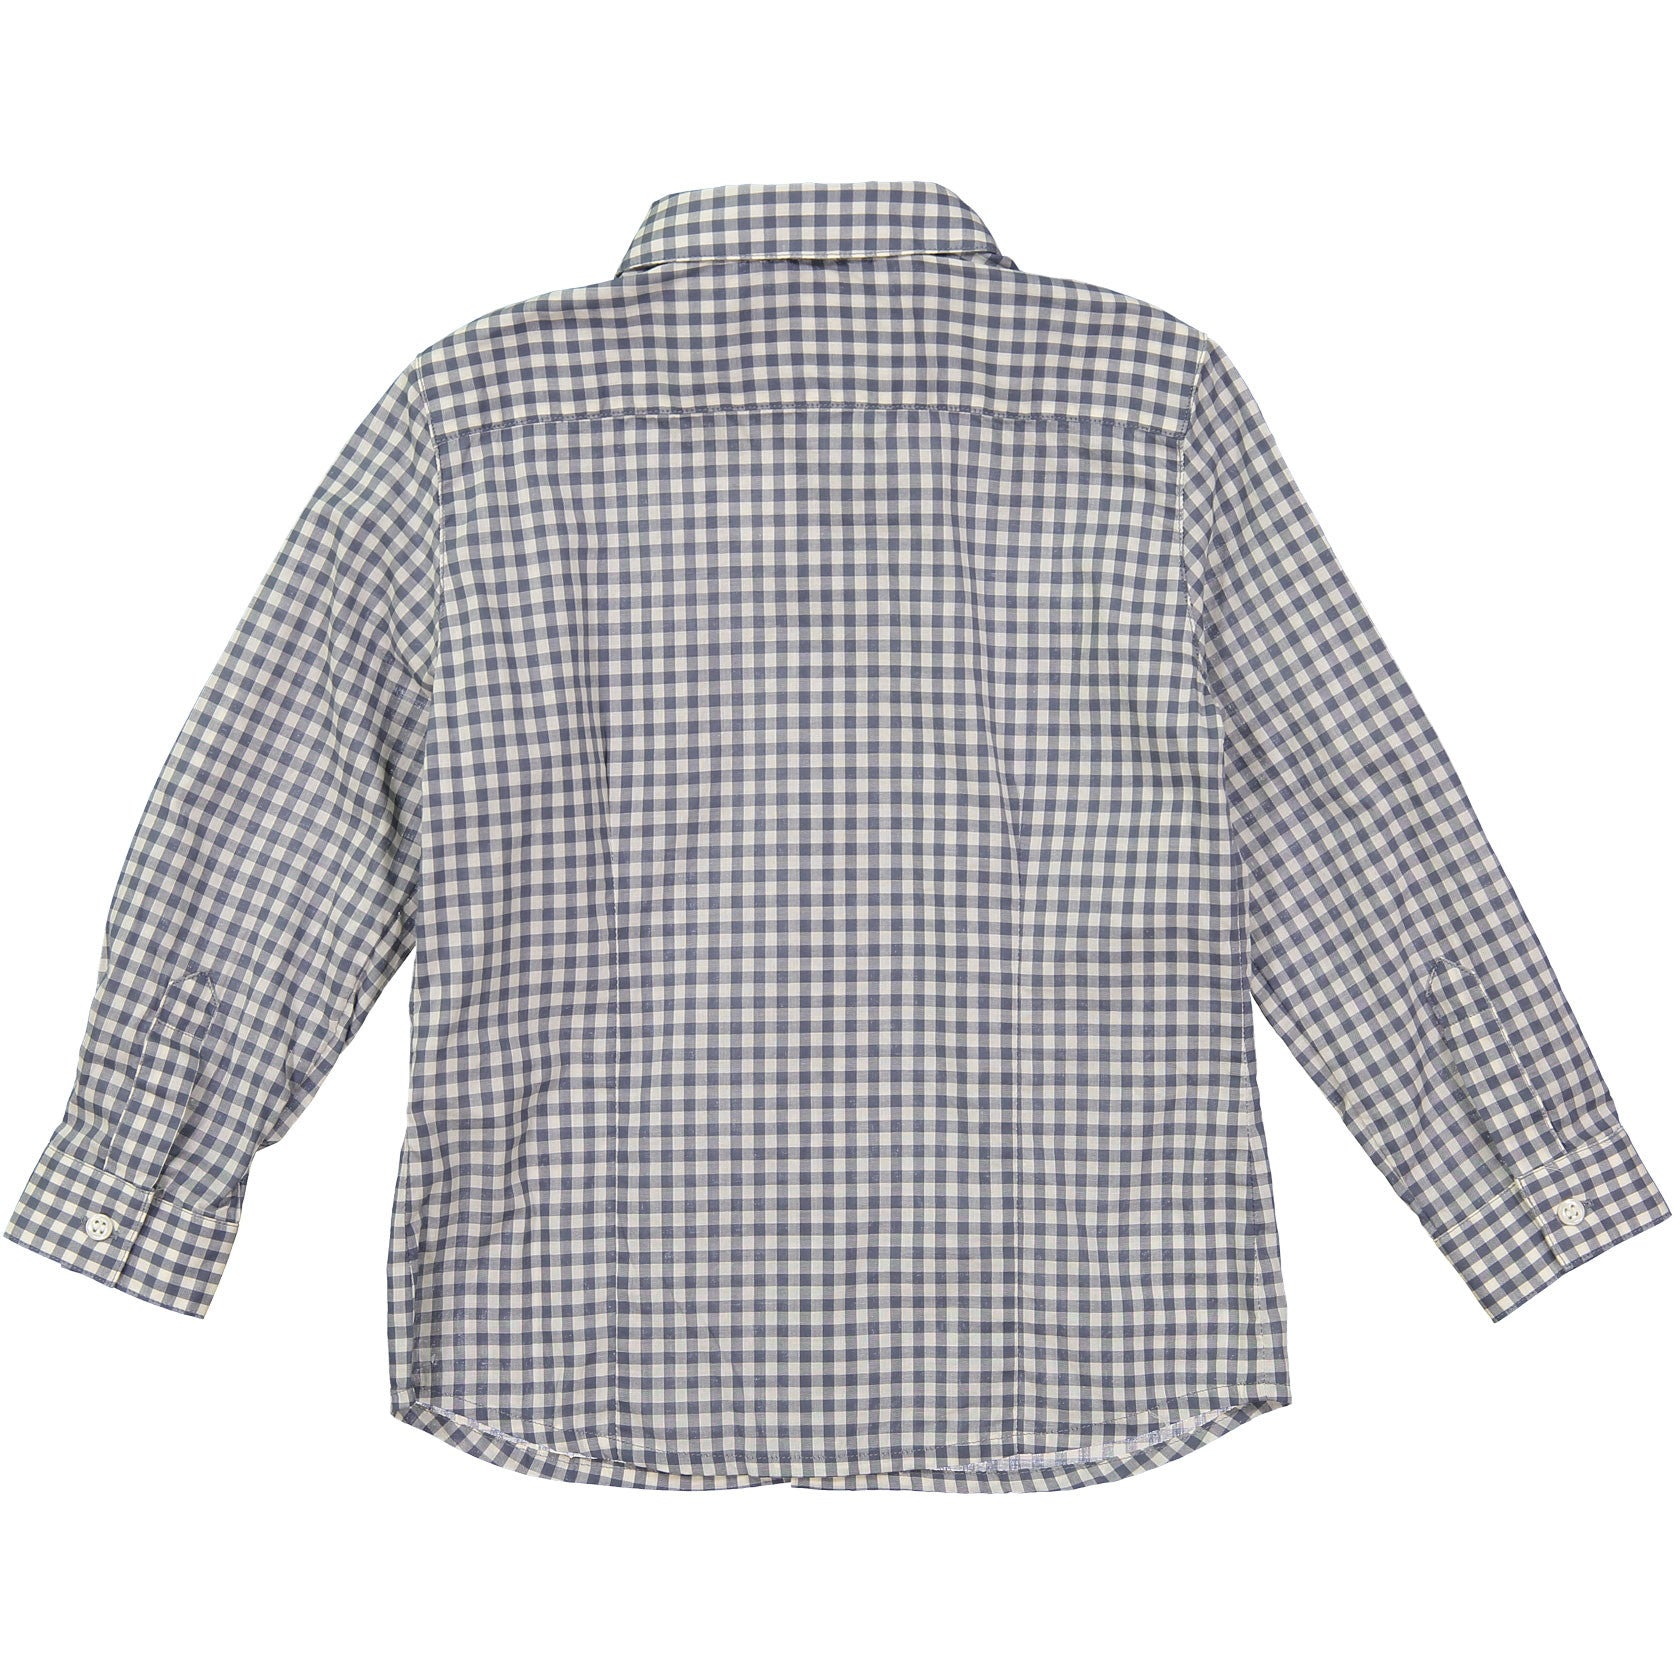 Bonpoint Blue Check Shirt - Ladida